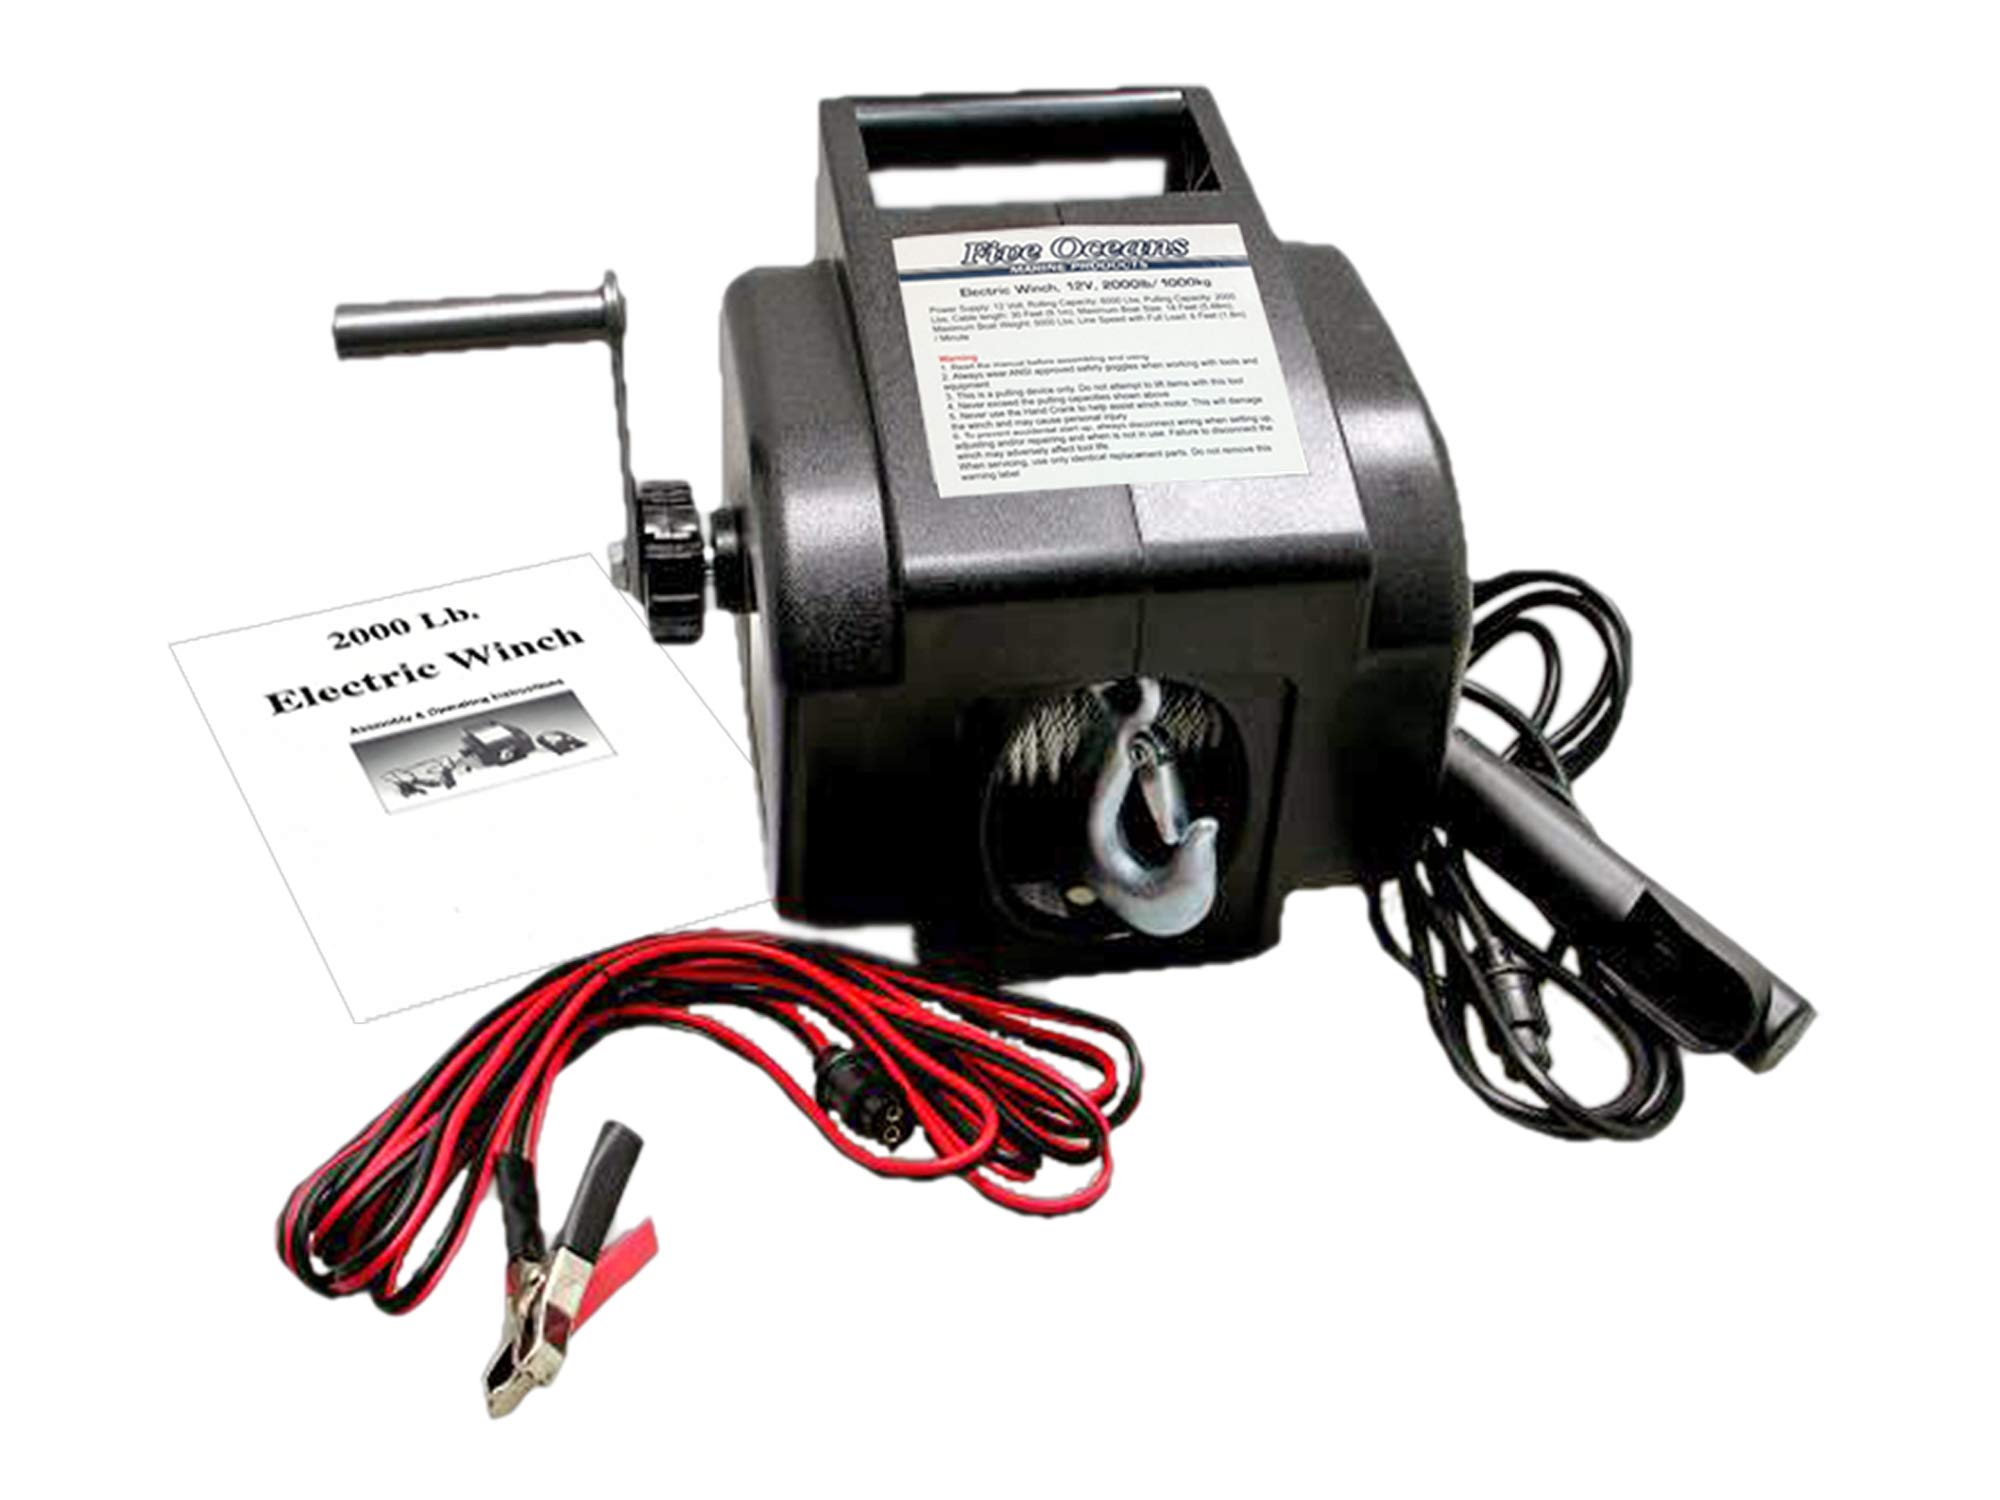 Five Oceans Electric Portable Trailer Recovery Winch, 2000 LBS FO-3440-1 by Five Oceans